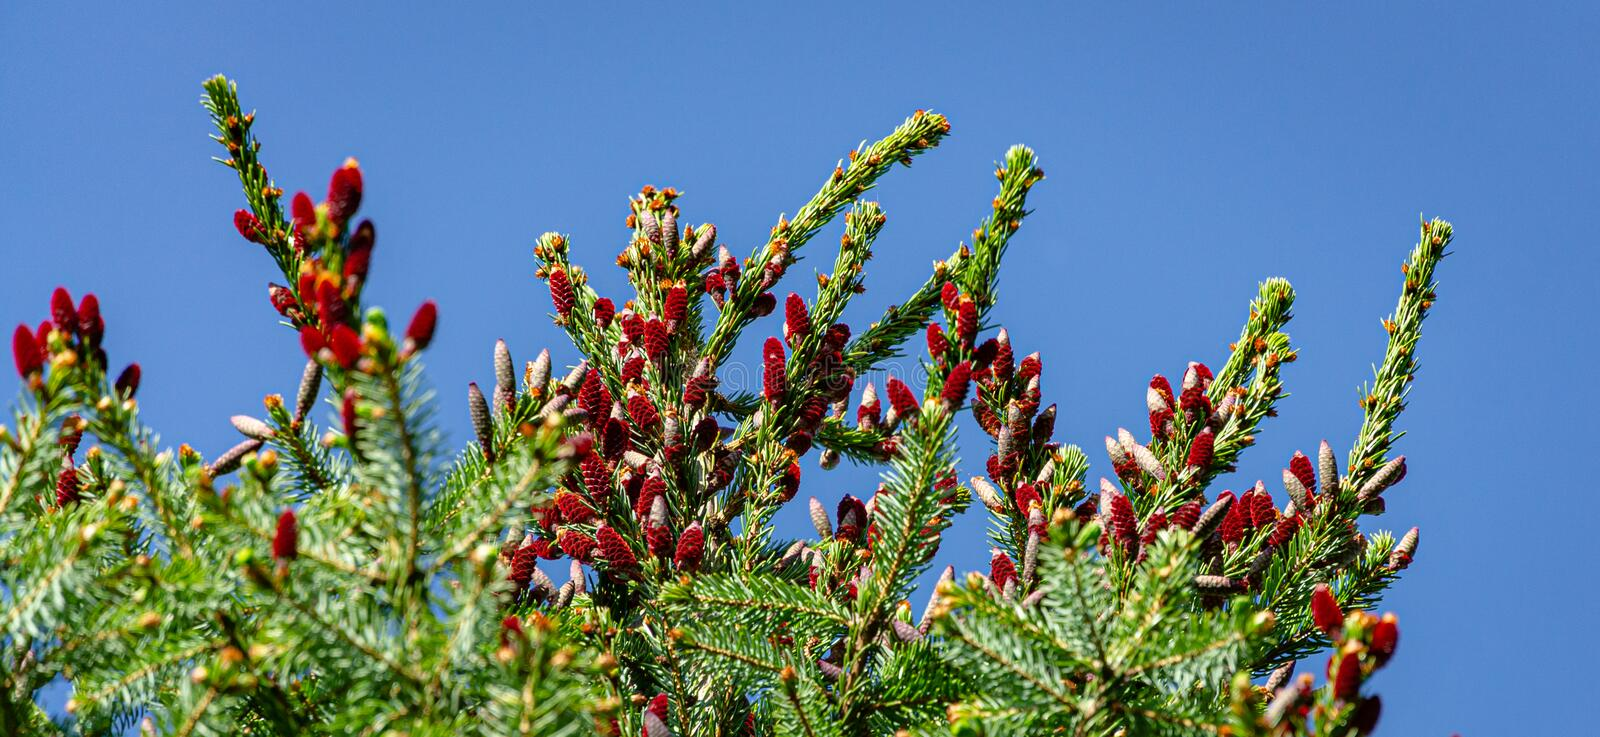 Close-up of red young pine cones on top of Picea omorika on blue sky background. Sunny day in spring garden. Nature concept for design. Selective focus. There royalty free stock photos